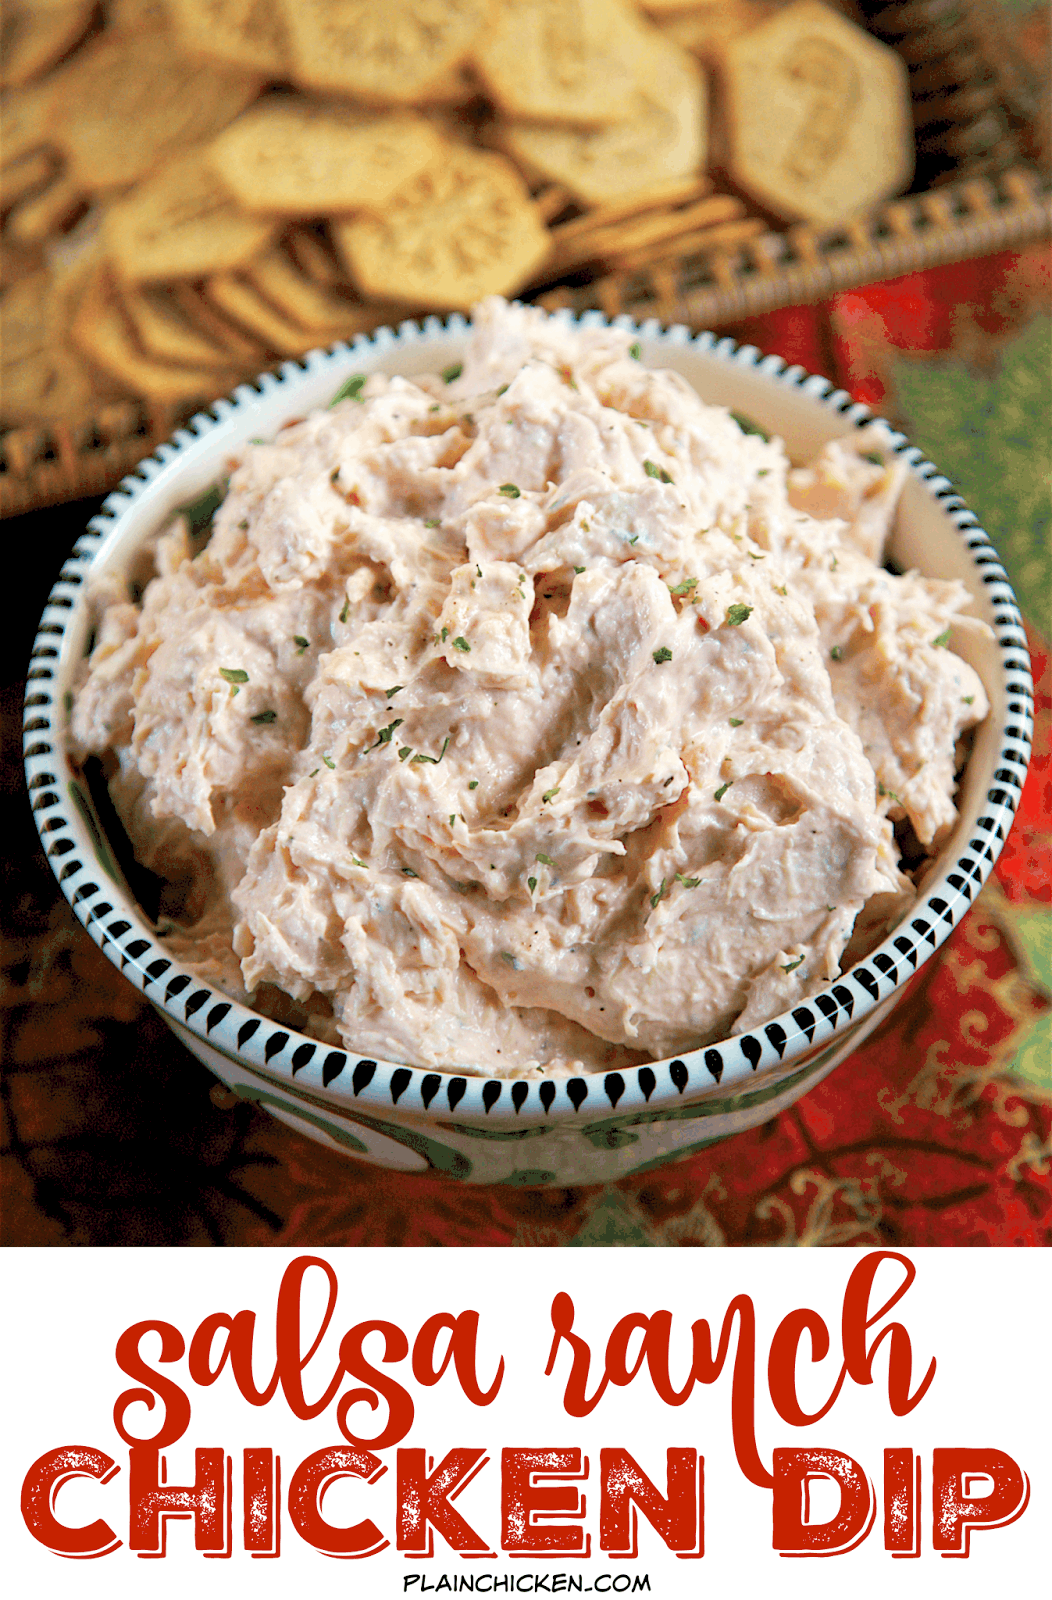 Salsa Ranch Chicken Dip - only 4 ingredients! You probably have everything in your pantry right now to whip up the delicious dip! Literally takes one minute to make. We serve it with wheat thins and veggies. Great for parties!